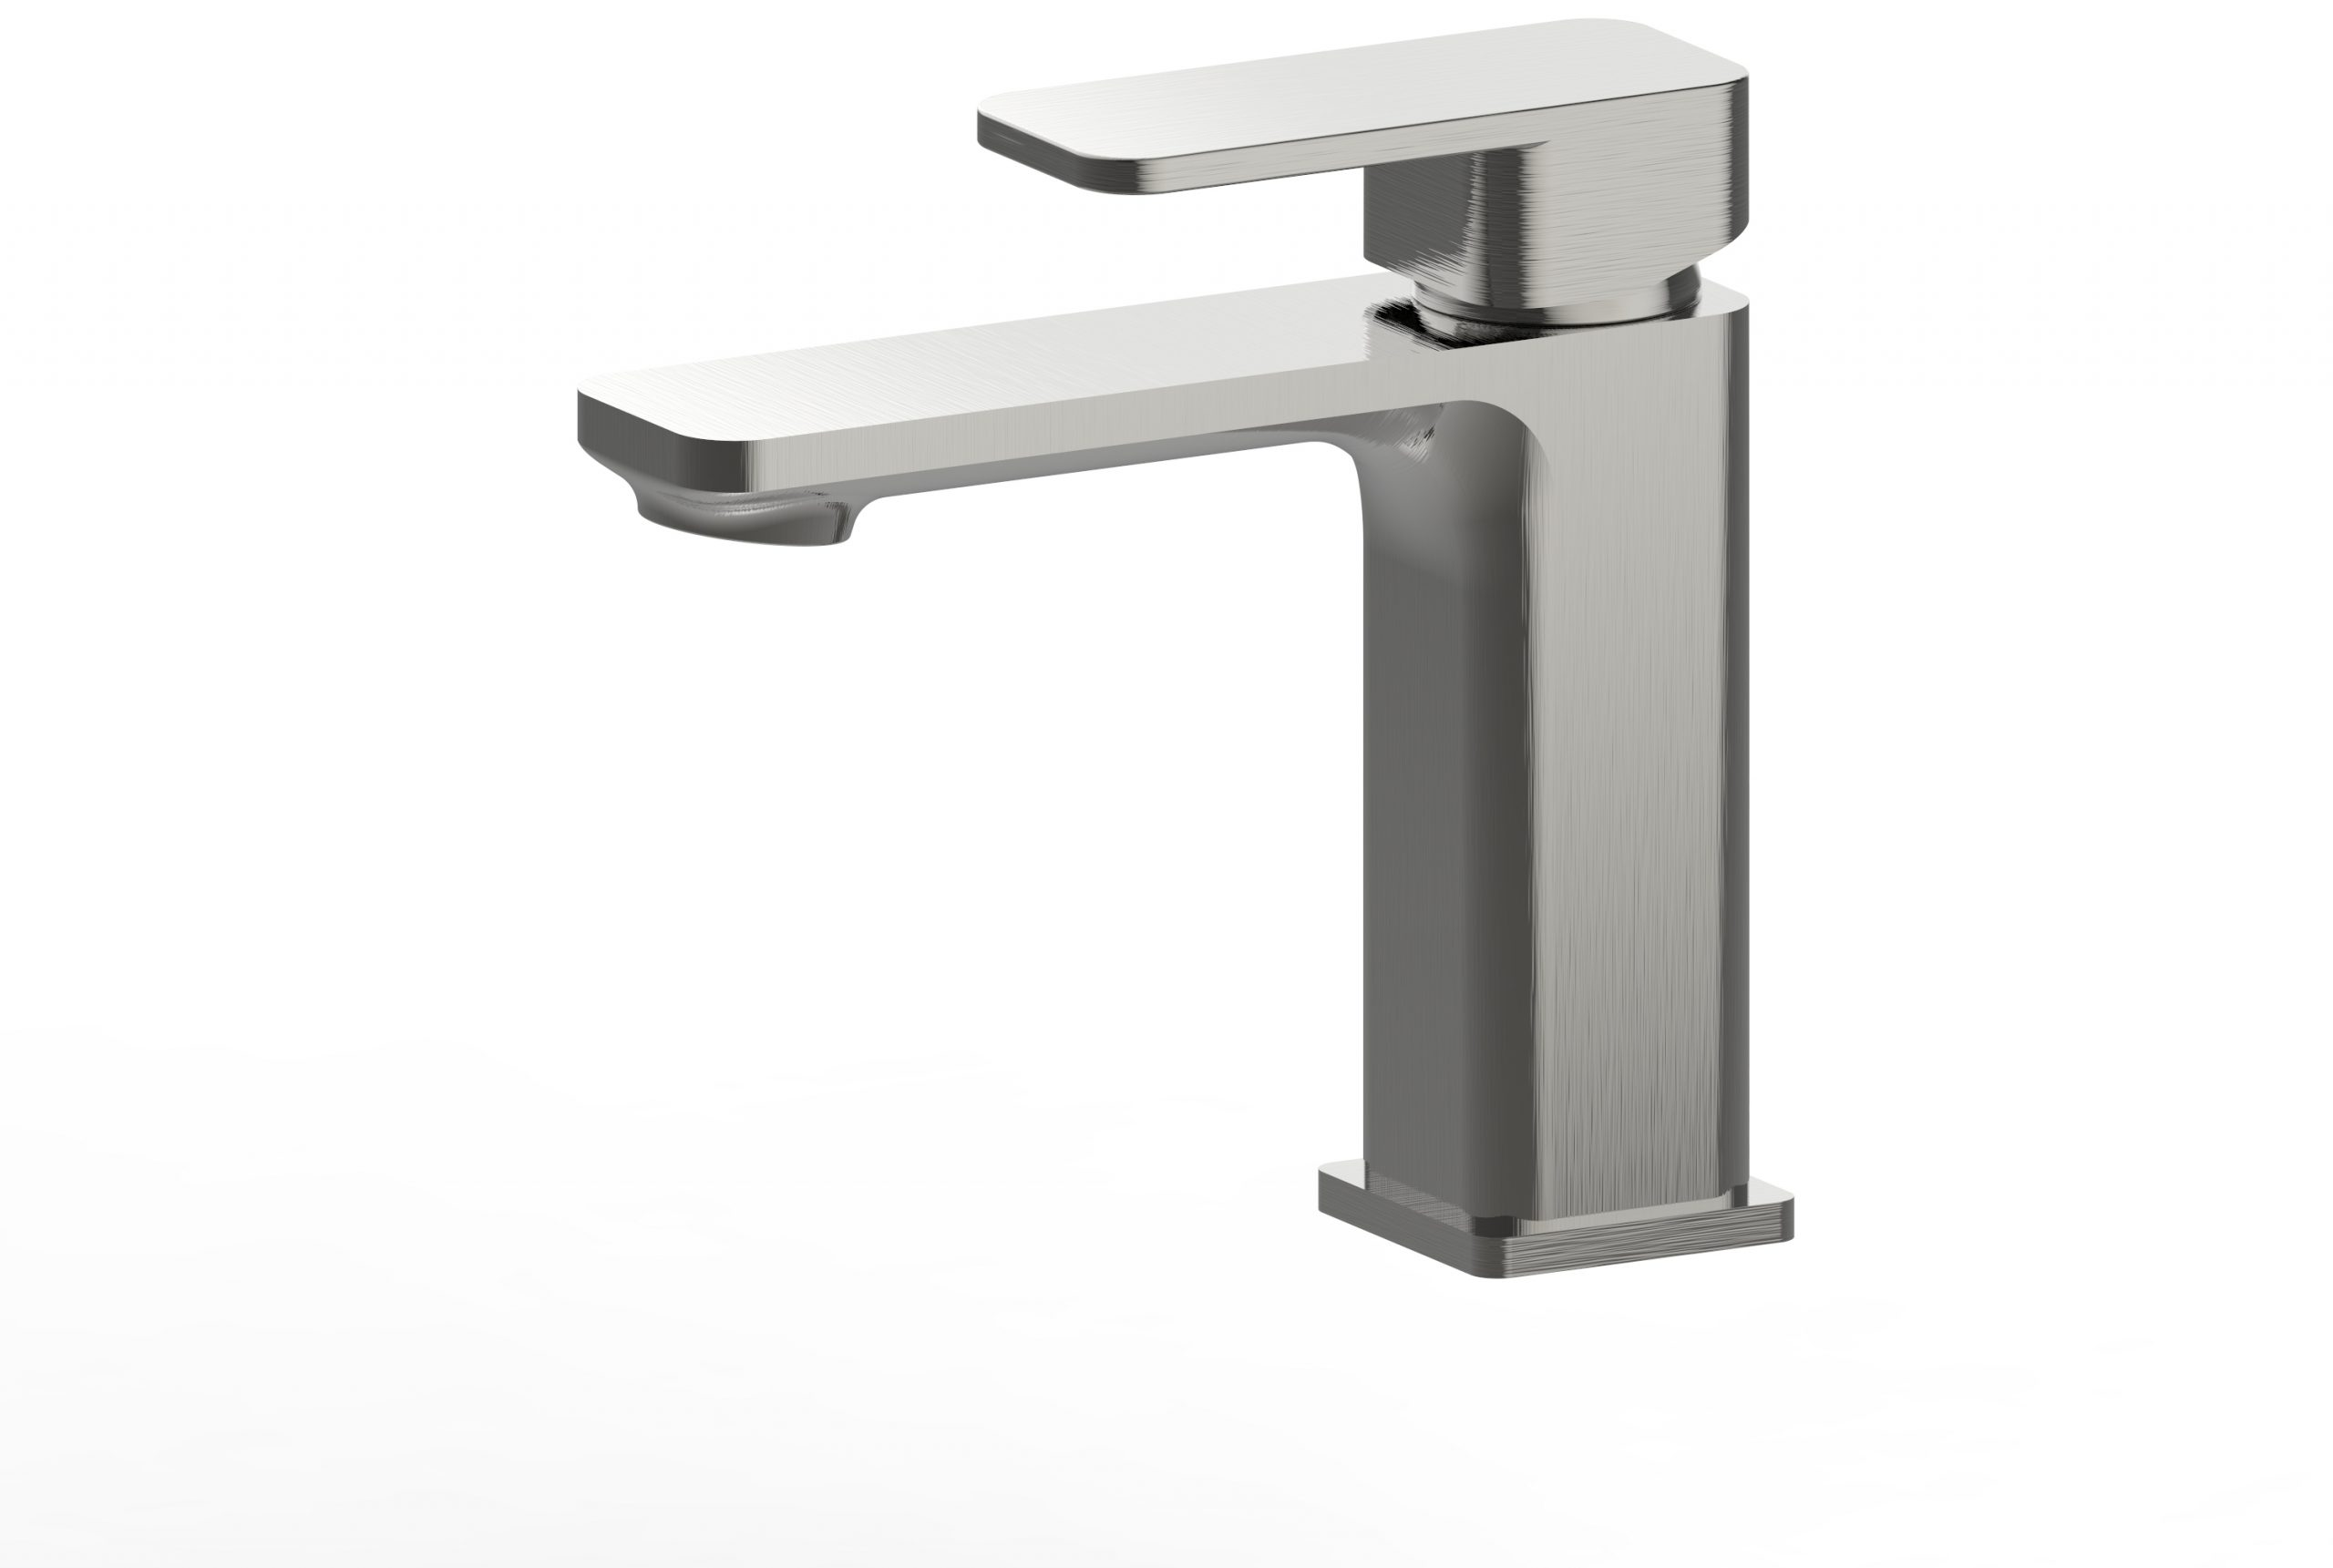 Kasten Basin Mixer-Brushed Nickel